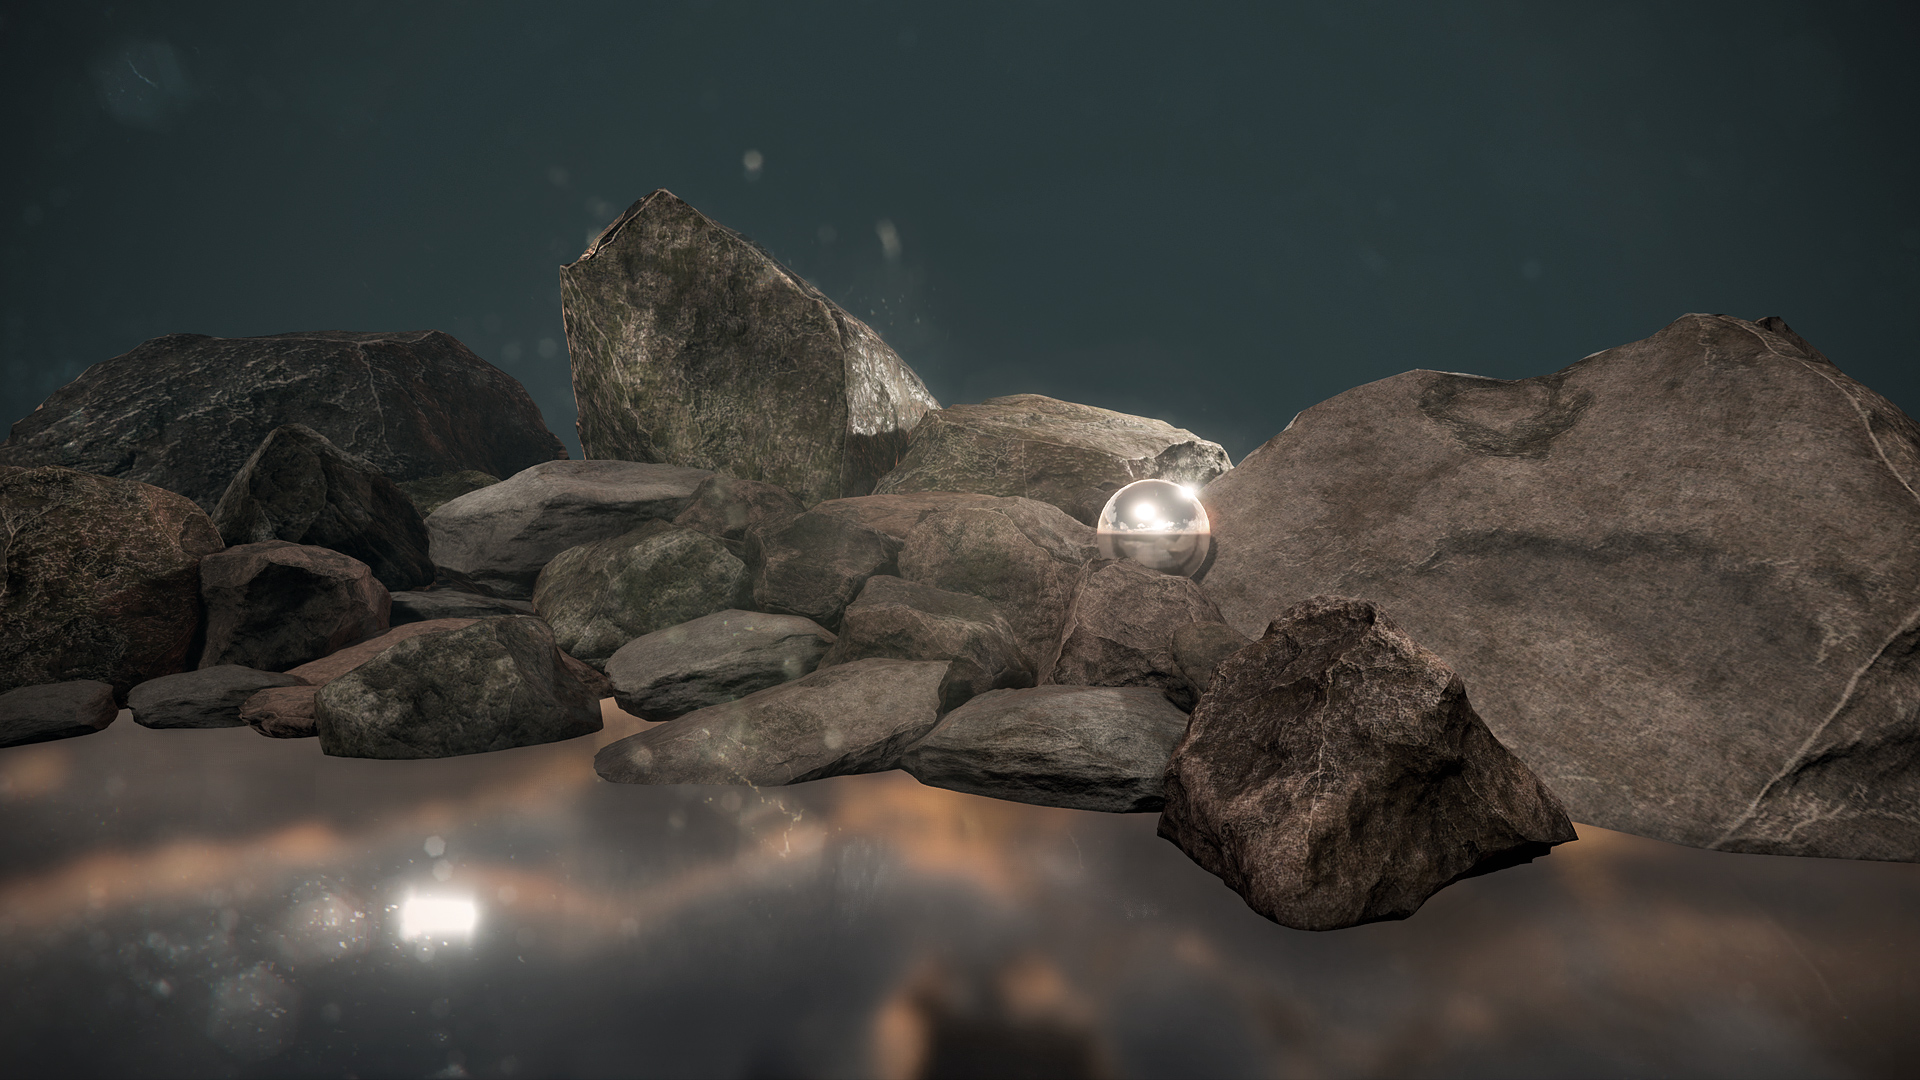 I created approximately a dozen different sizes and shapes of boulders in order to explore different creation techniques and build a personal library of rocks for future projects.  Square, round, flat, big, small, mossy, clean, rough, smooth, I hopefully have a rock for almost any occasion here.  Modeled in 3ds Max and ZBrush, physically based textures created in Photoshop, rendered in Unreal Engine 4.